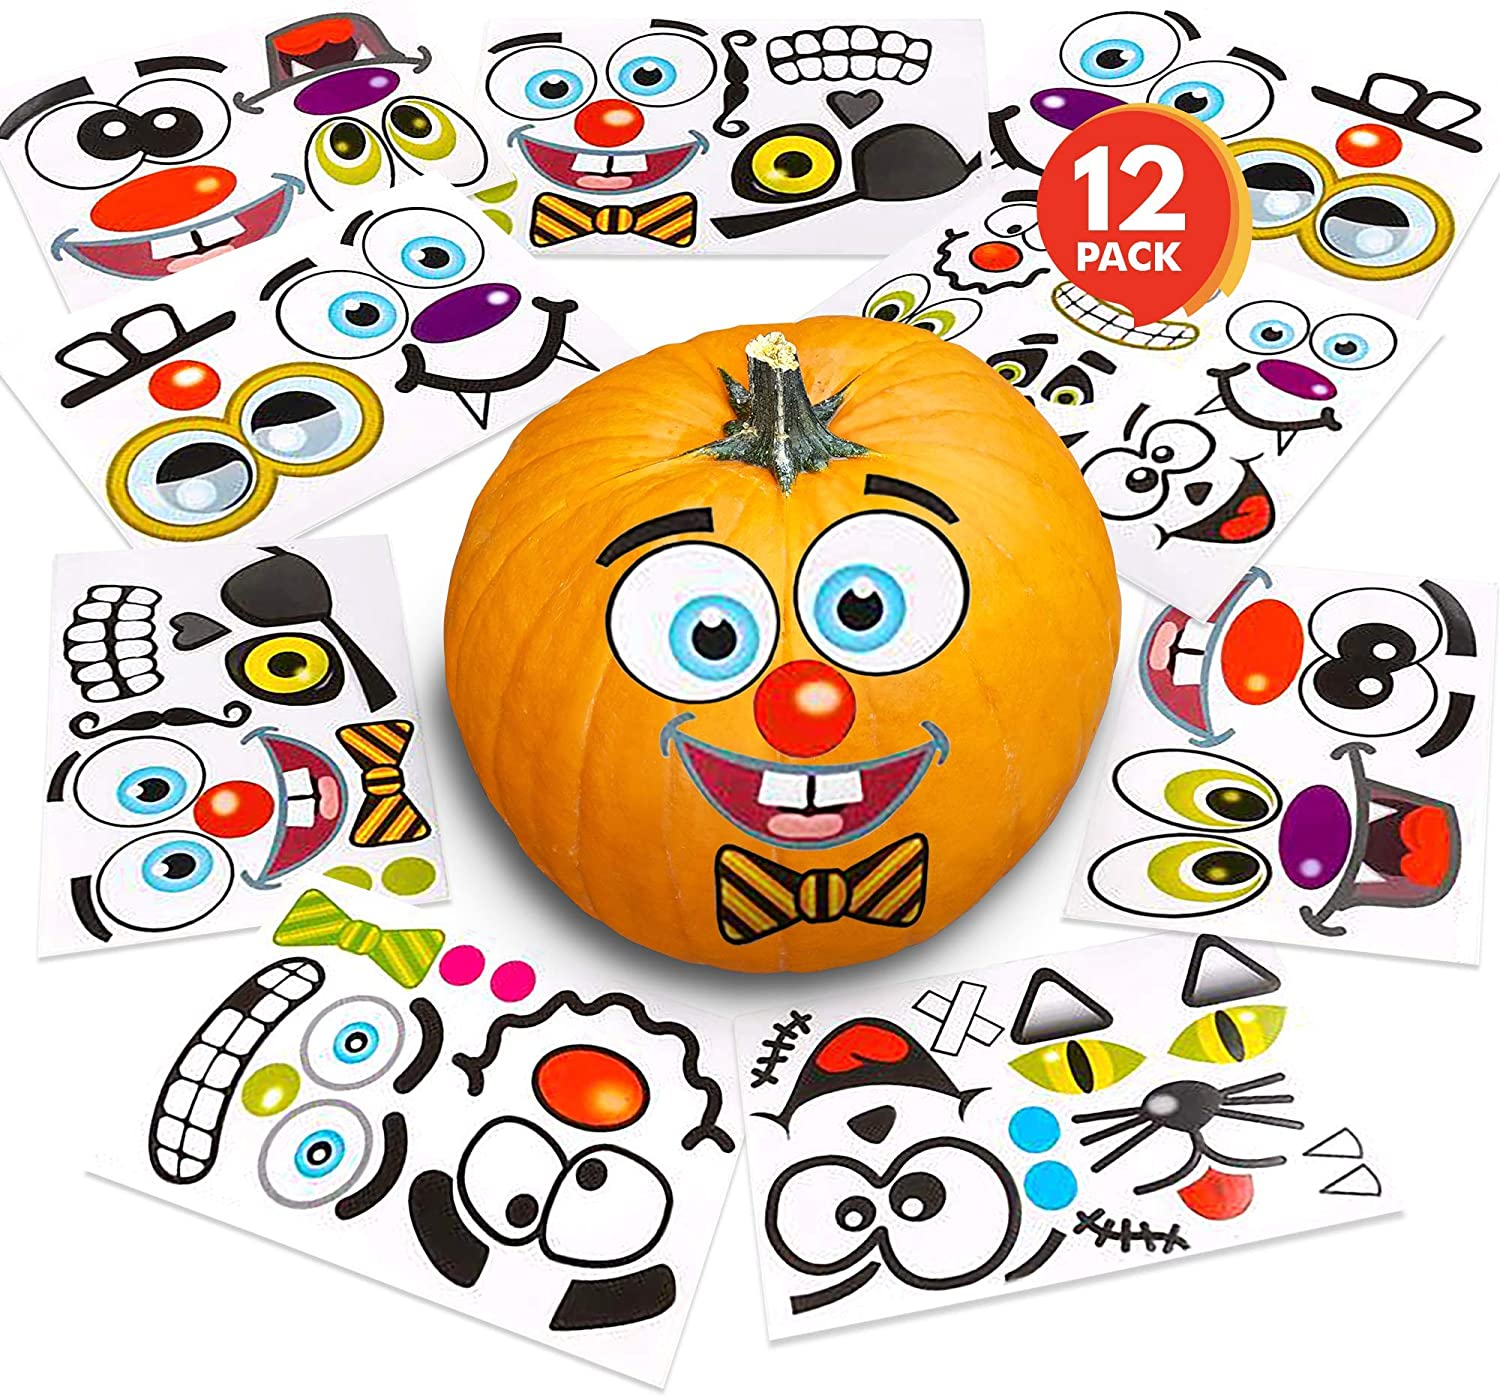 ArtCreativity Halloween Pumpkin Decorating Stickers - 12 Sheets - Jack-o-Lantern Decoration Kit - 26 Total Face Stickers - Cute Halloween Decor Idea - Treats, Gifts, and Crafts for Kids